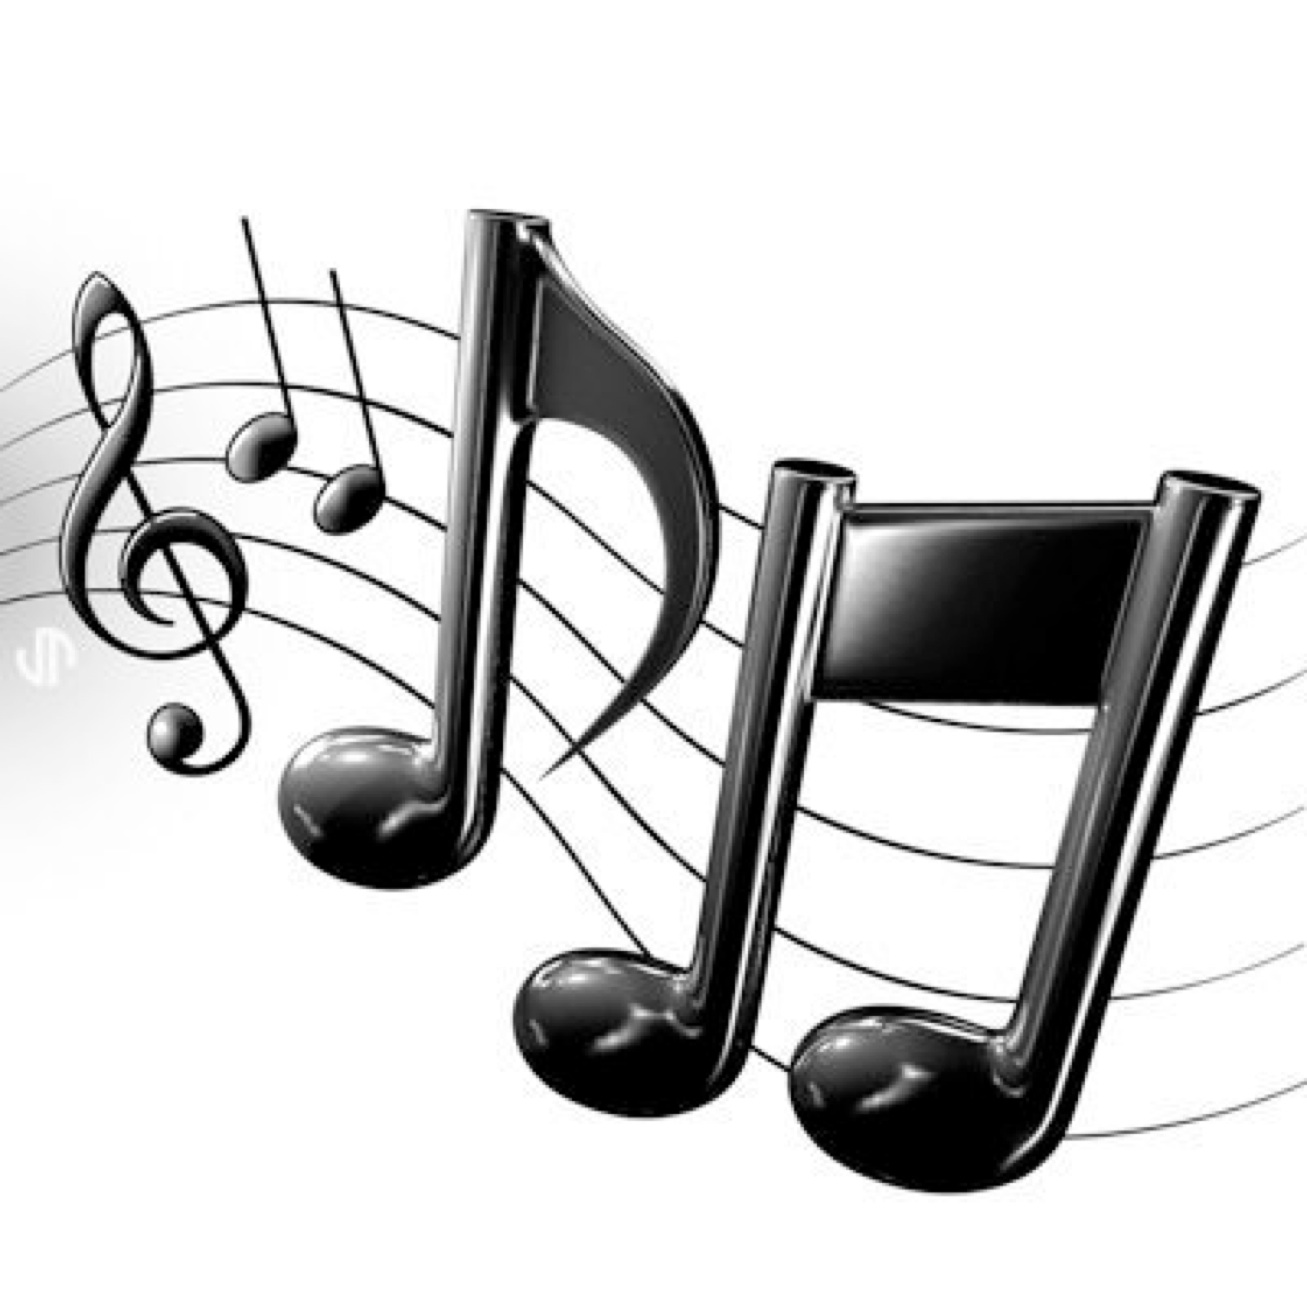 notes musical drawings clipart symbols designs note singing cute sing song easy songs cool word